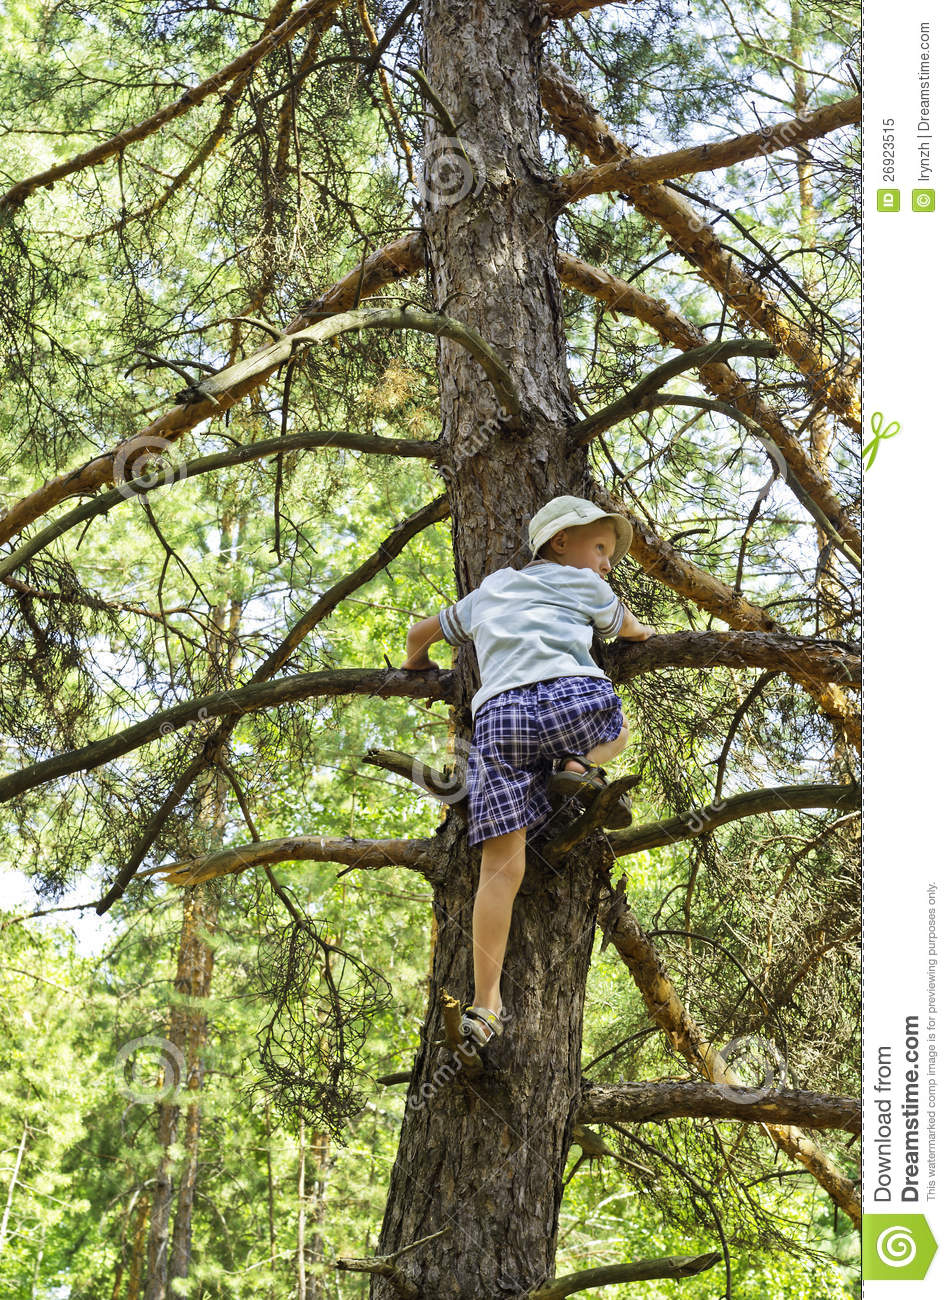 Un Enfant Mont 233 Sur Un In Field De Pin Arbre Photo Libre